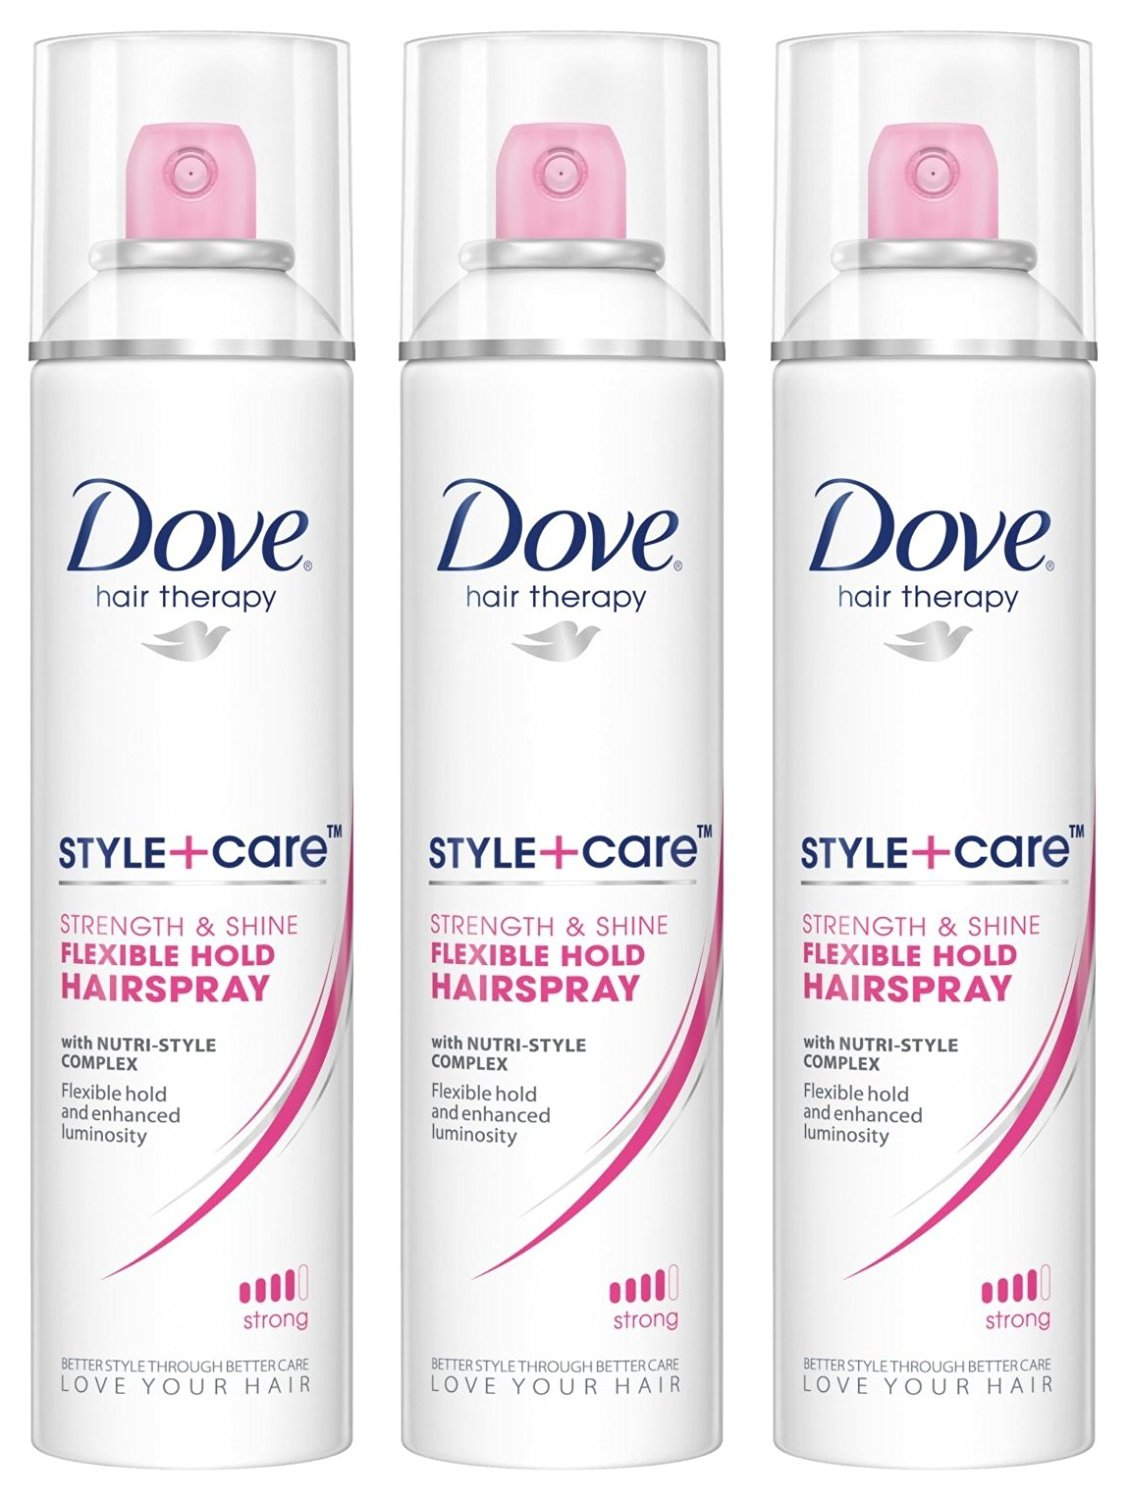 Dove Hair Therapy - Style + Care - Flexible Hold Hairspray - Net Wt. 7 OZ (198 g) Each - Pack of 3